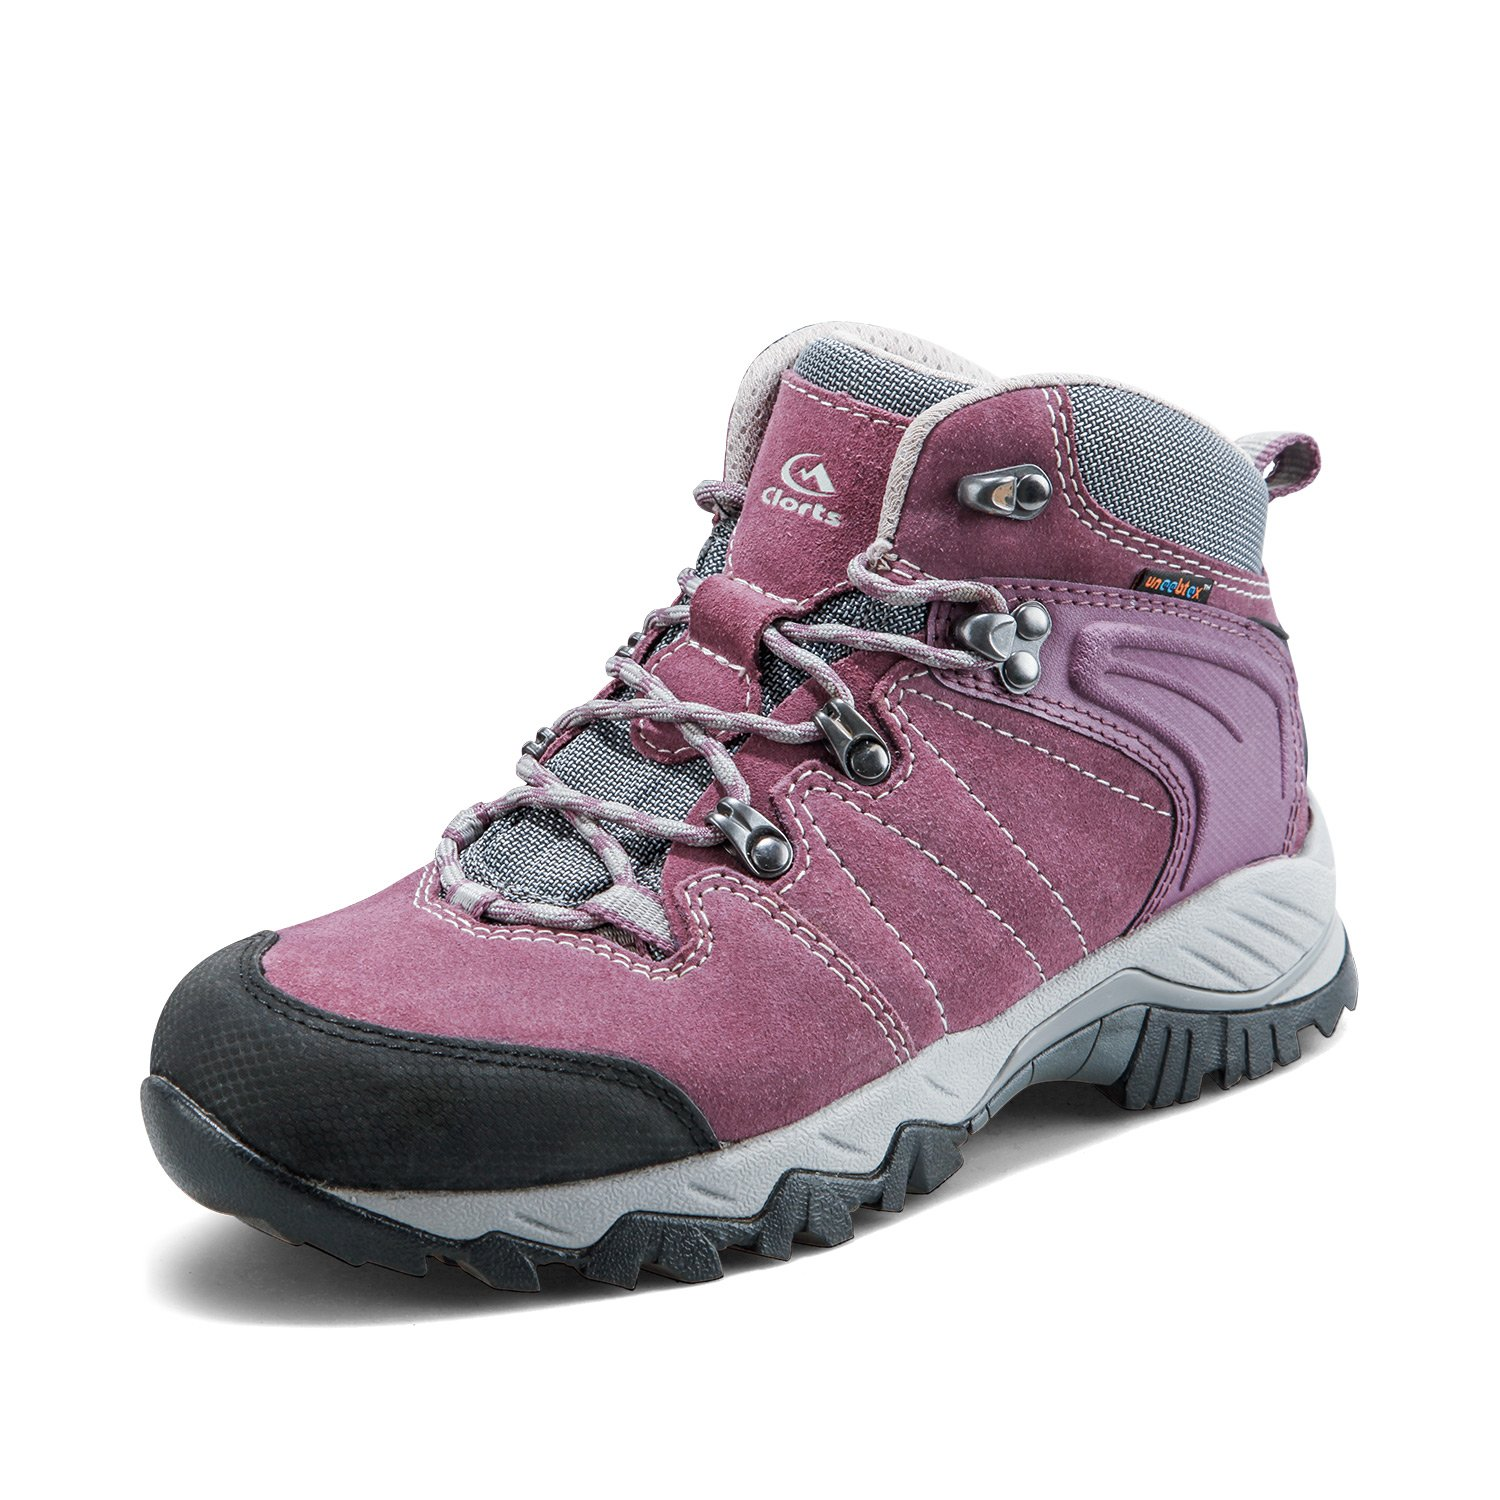 Clorts Women's Hiker Leather GTX Waterproof Hiking Boot Outdoor Backpacking Shoe Purple HKM-822E US8.5